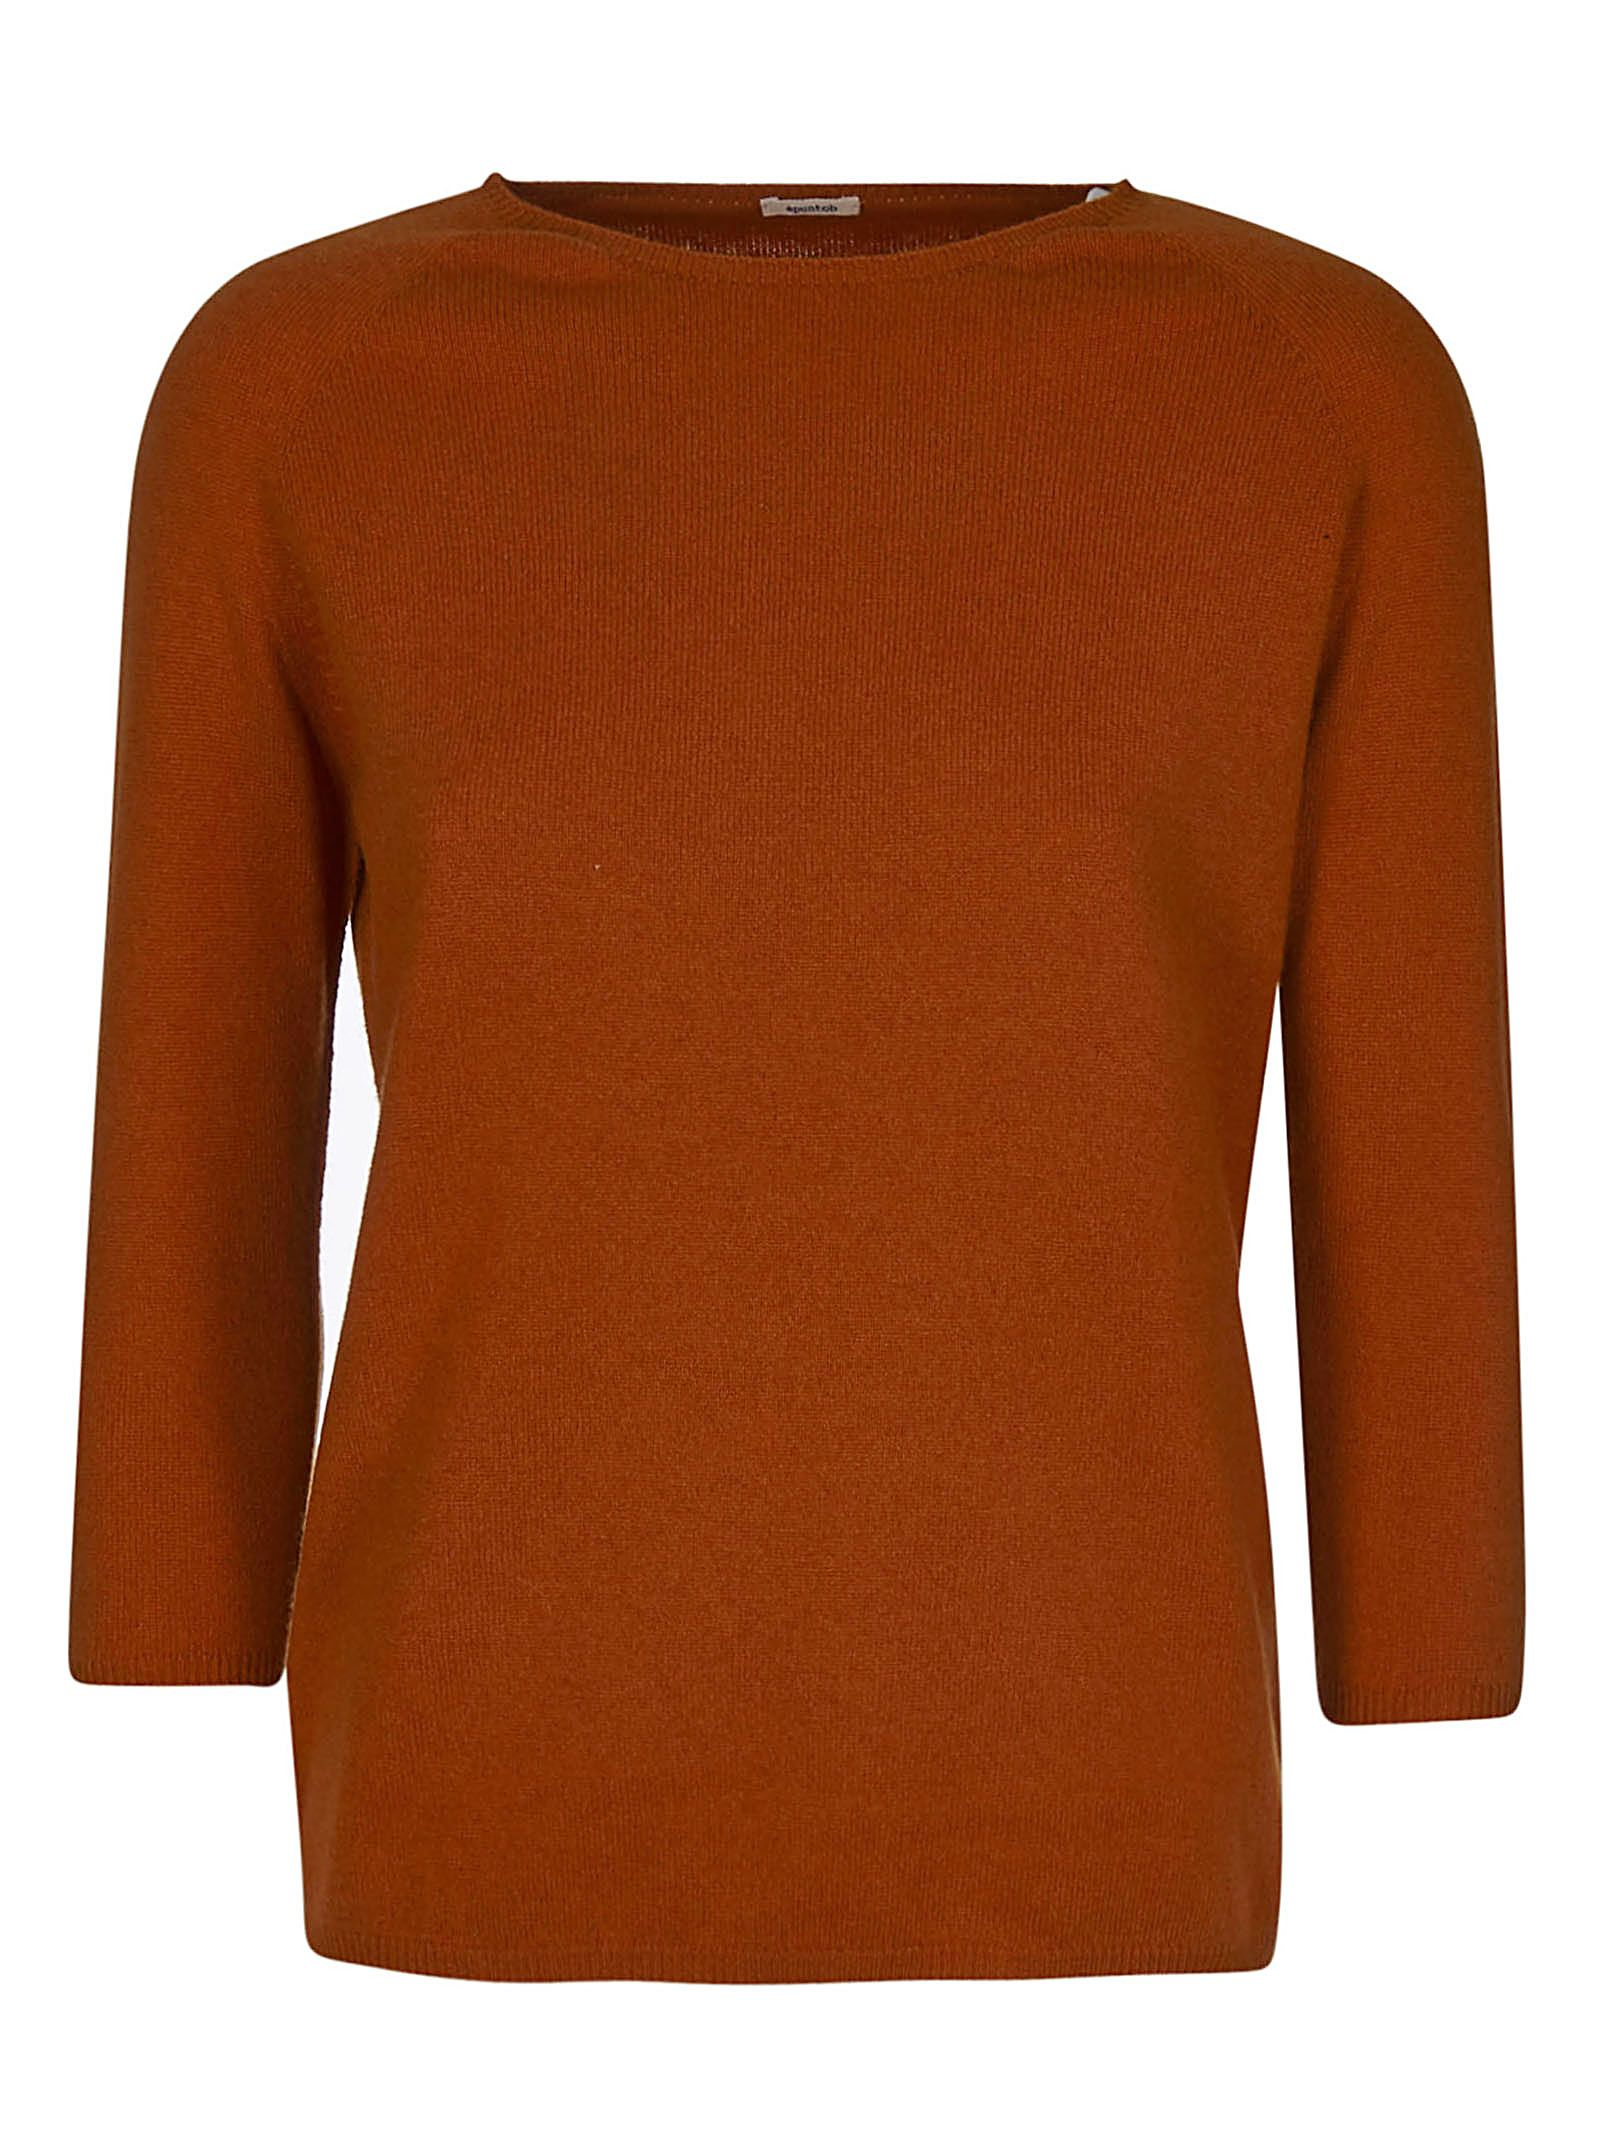 A PUNTO B A.B Knitted Slim Sweater in Orange